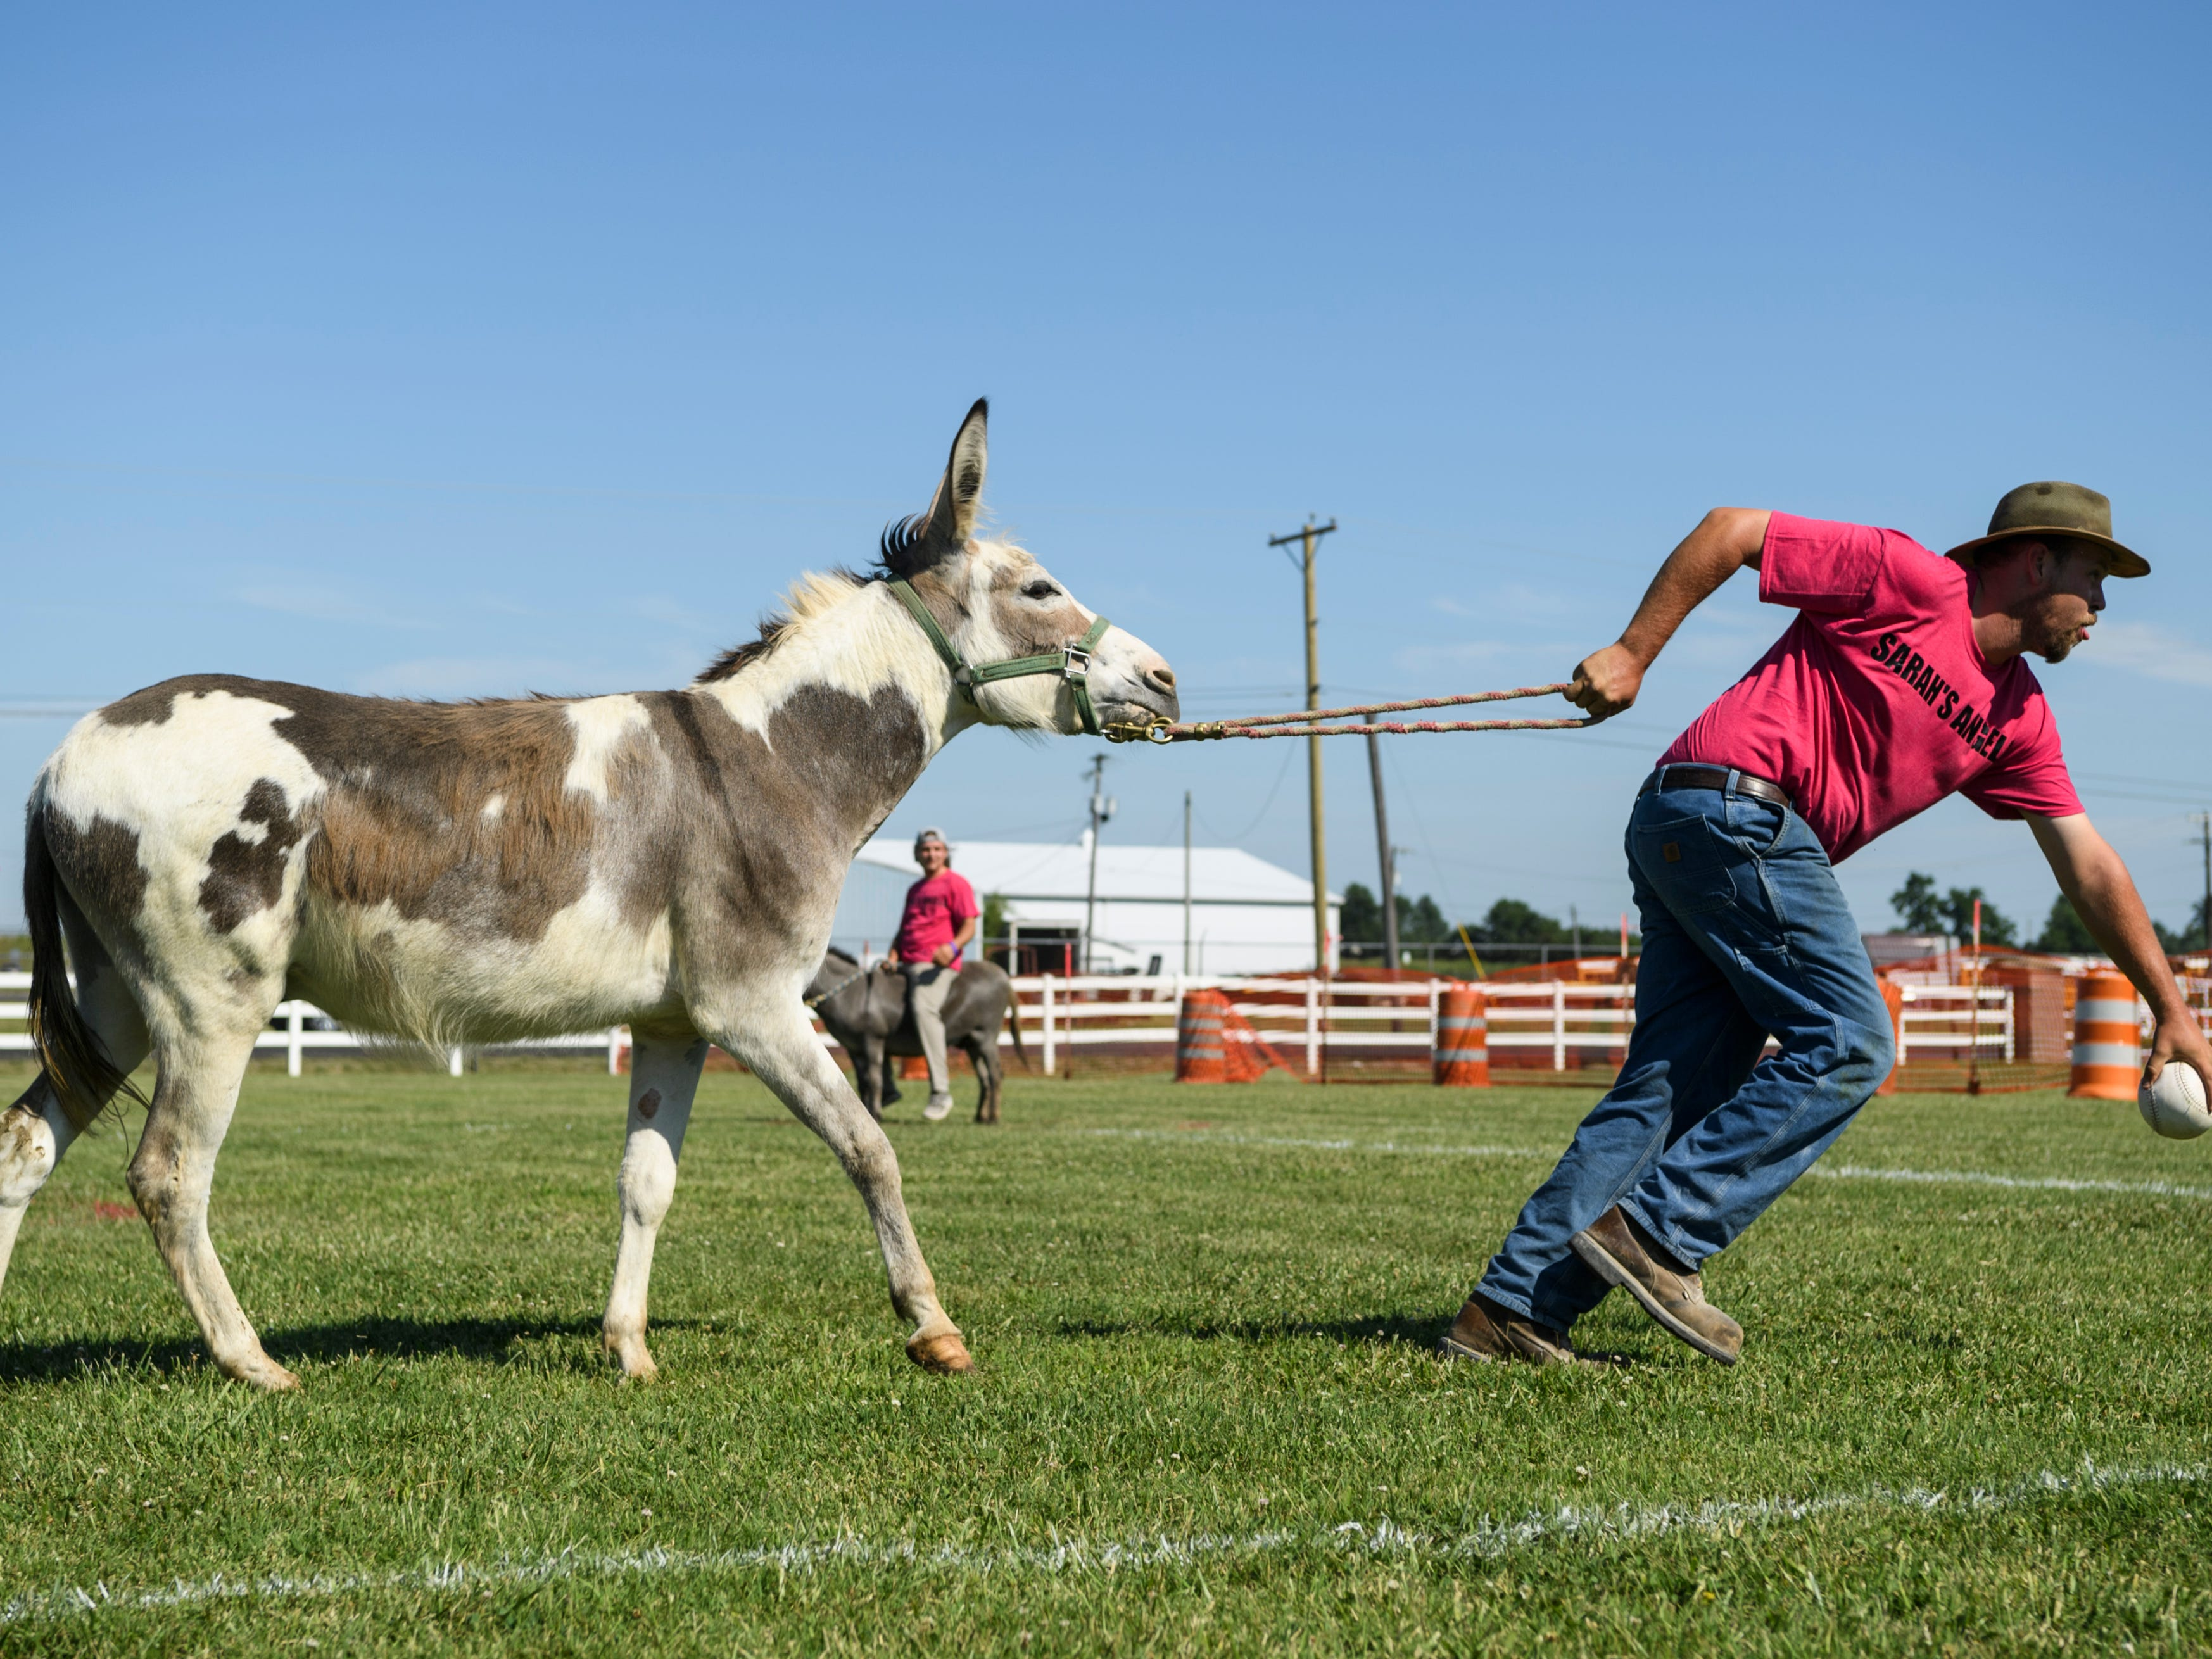 Sarah's Angels player Jonathan Elben leads his stubborn donkey to home plate during a Donkey Softball match against the Swamp Donkeys at the Henderson County Fairgrounds in Henderson, Ky., Saturday afternoon, July 7, 2018. A third-generation family-owned company called Circle A Donkeys from Henry, Tennessee, travels to 13 different states offering donkeys for use in basketball, polo, softball and donkey races.